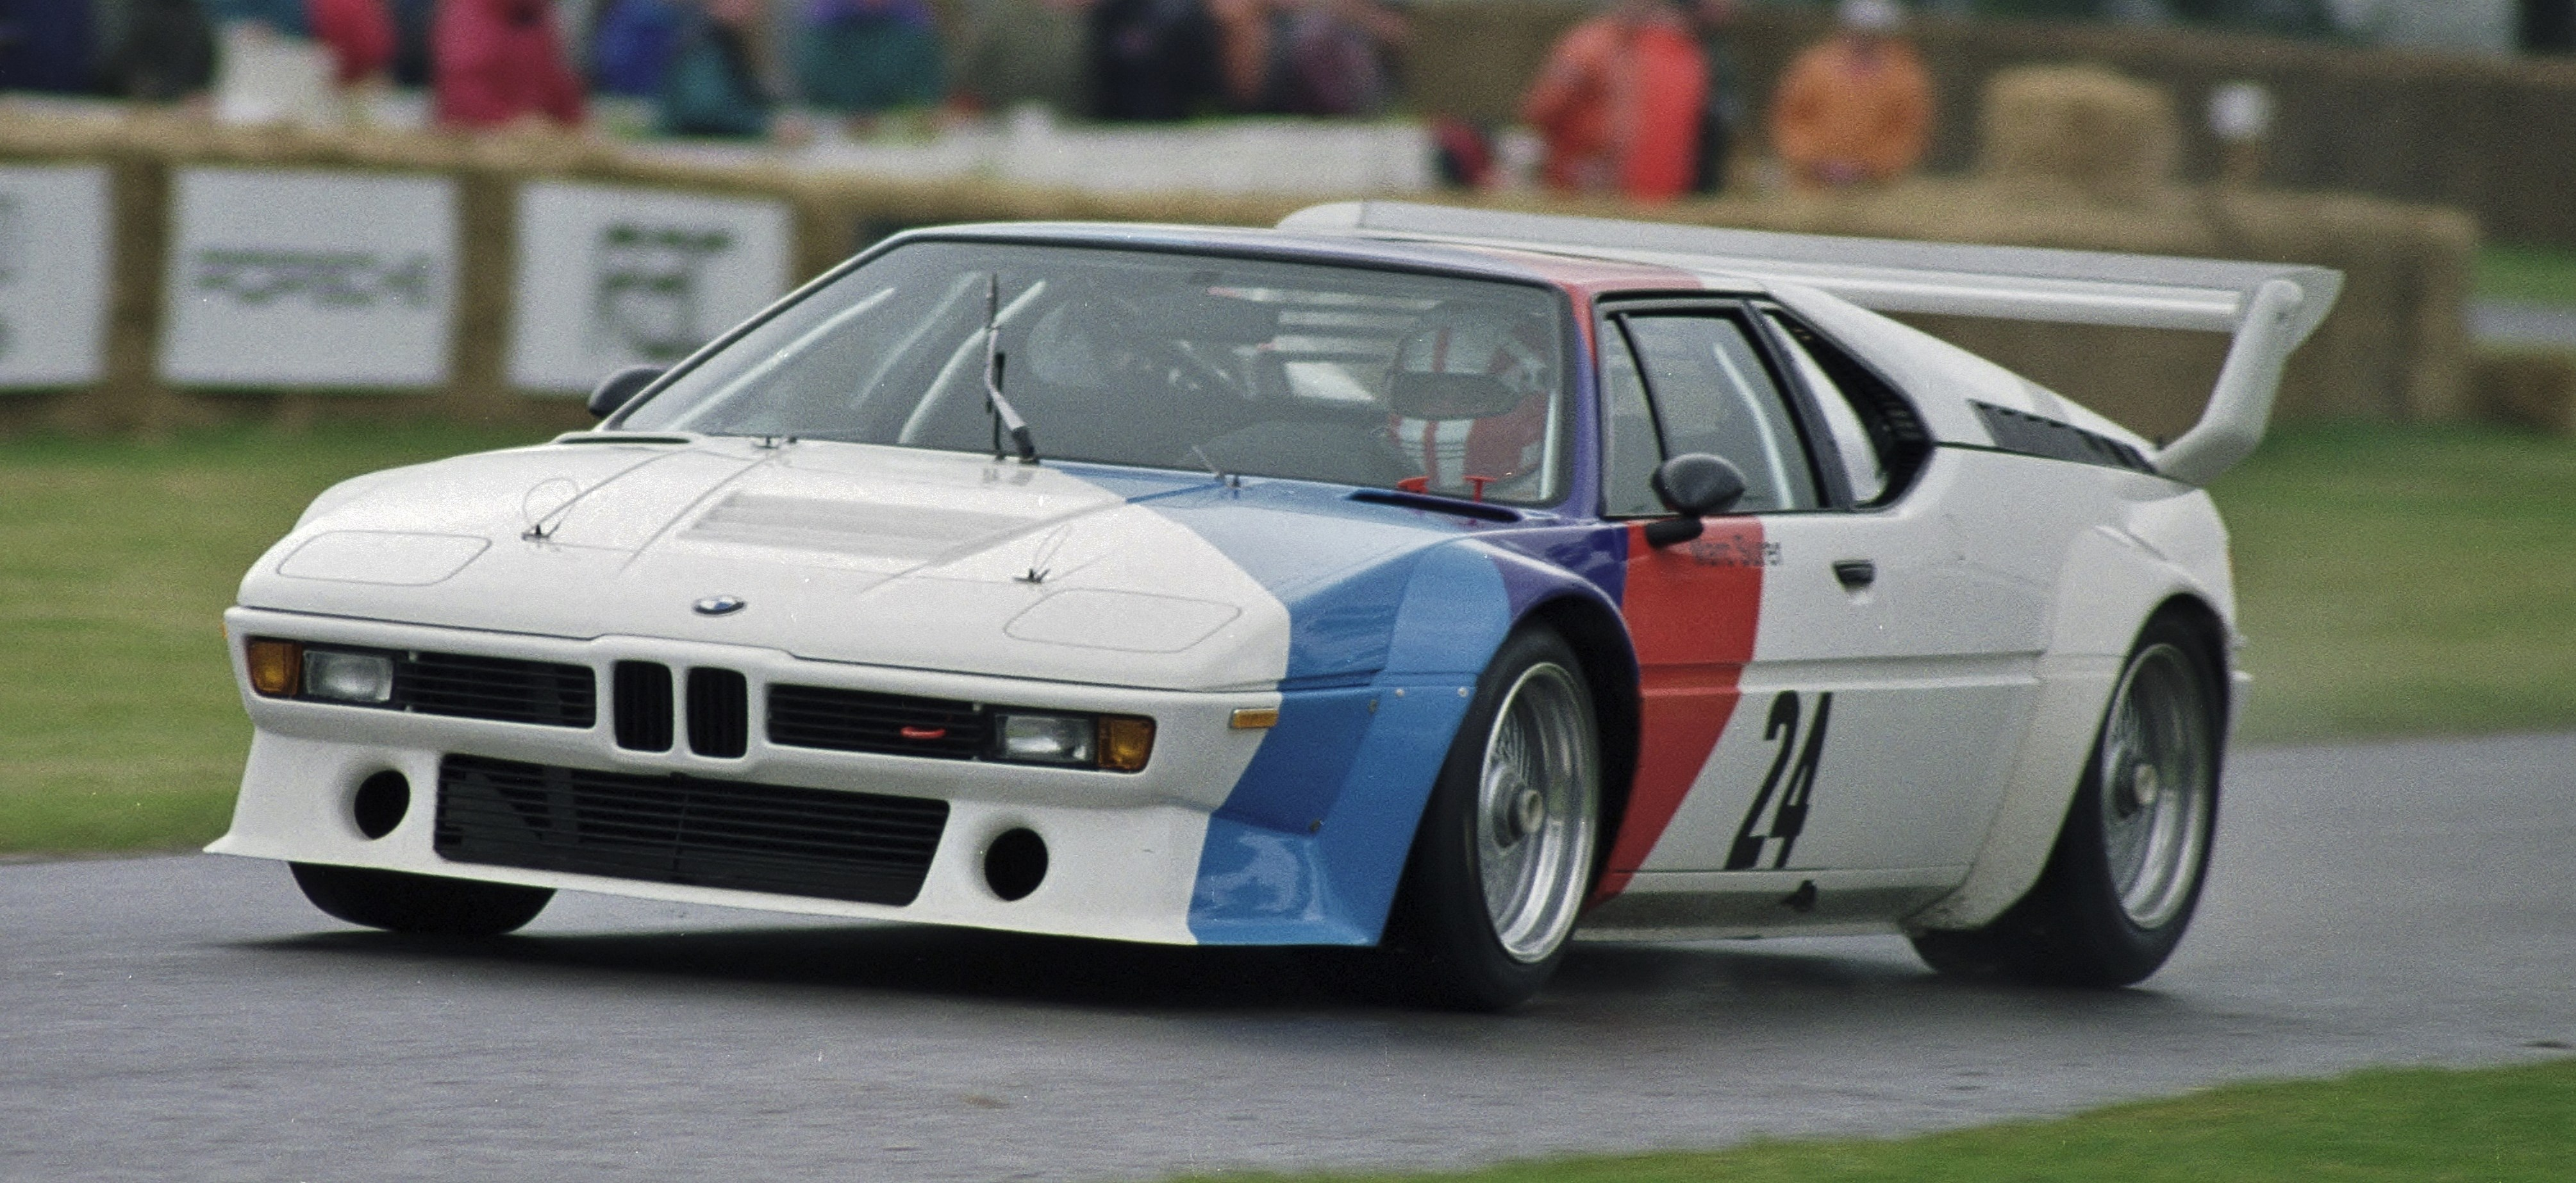 marc_surer_drives_the_bmw_m1_procar_-_1998_goodwood_festival_of_speed_15598397840